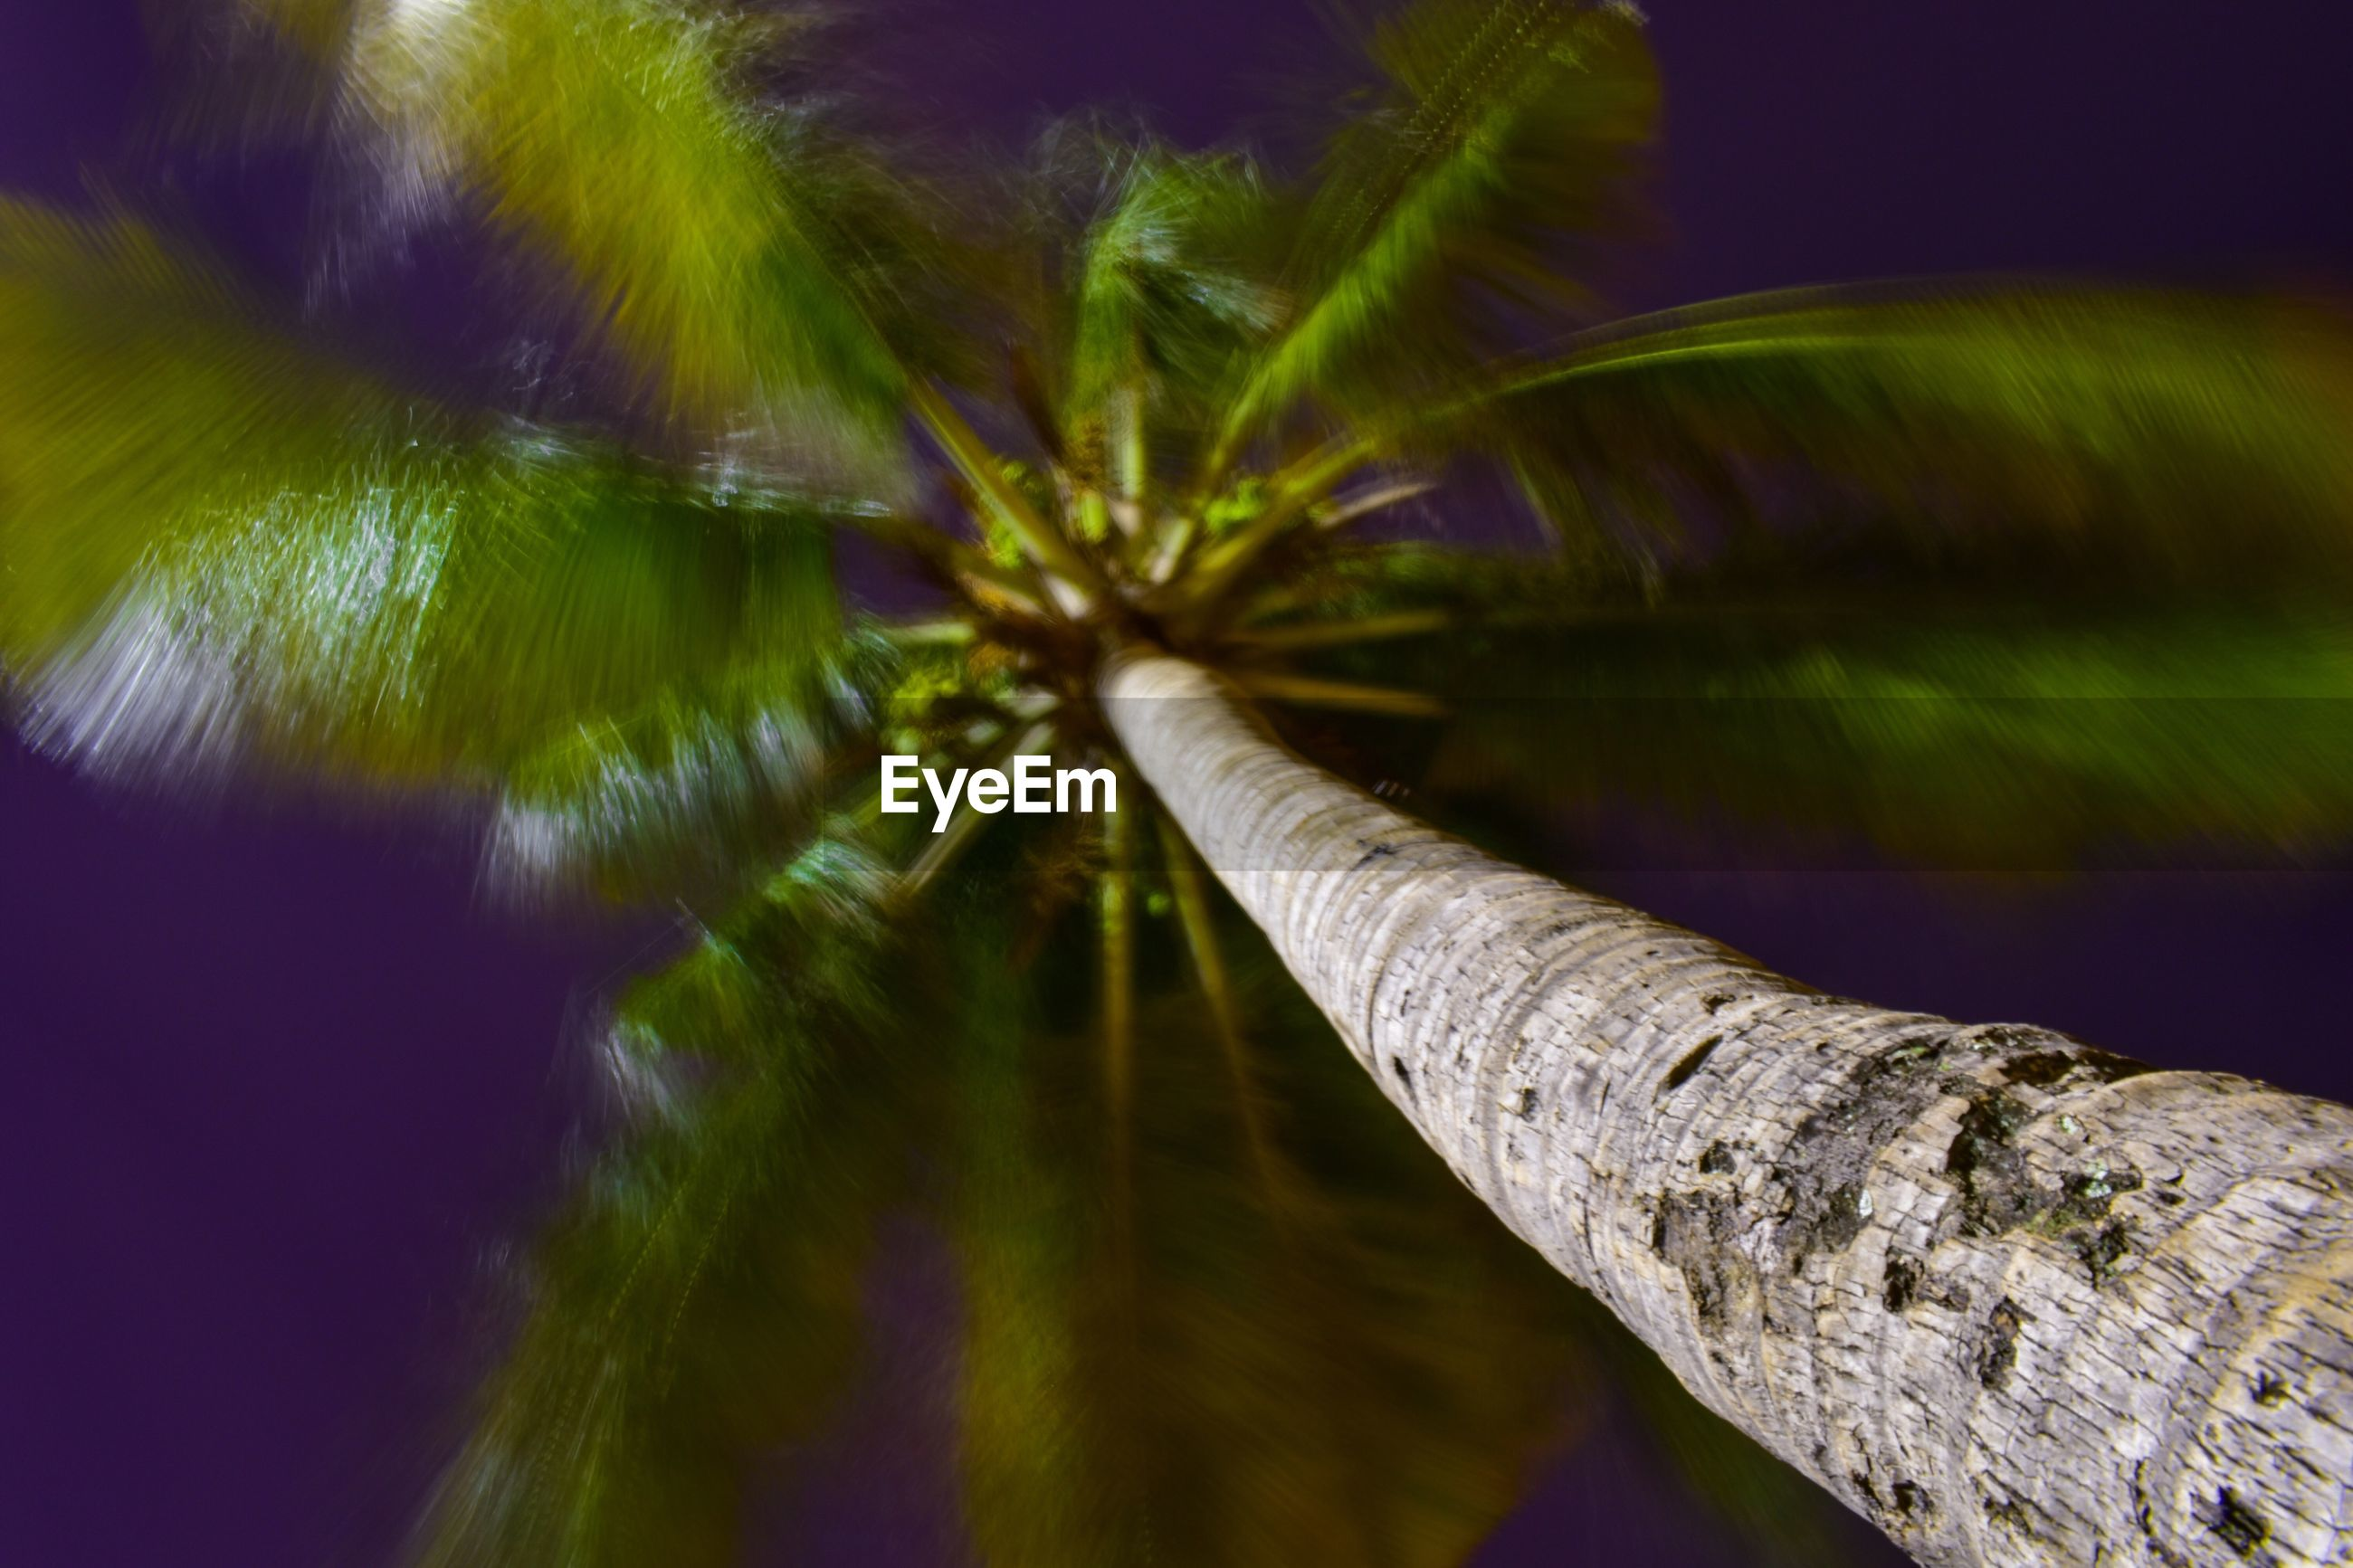 CLOSE-UP OF PALM TREE AGAINST PLANTS